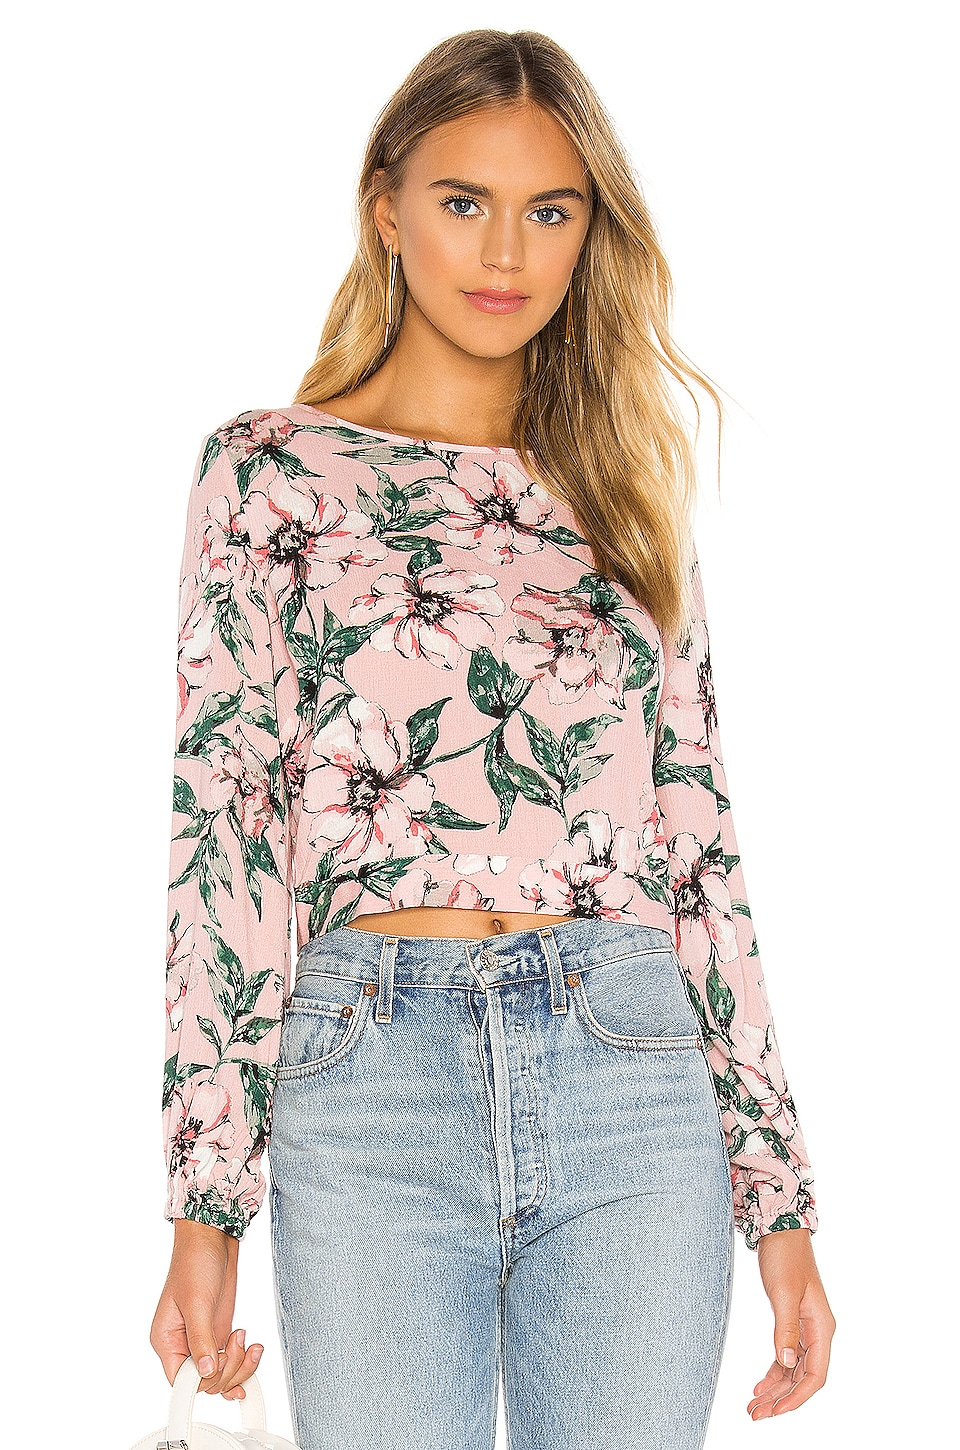 BB Dakota Jack by BB Dakota Tropic Baby Blouse in Rose Dawn